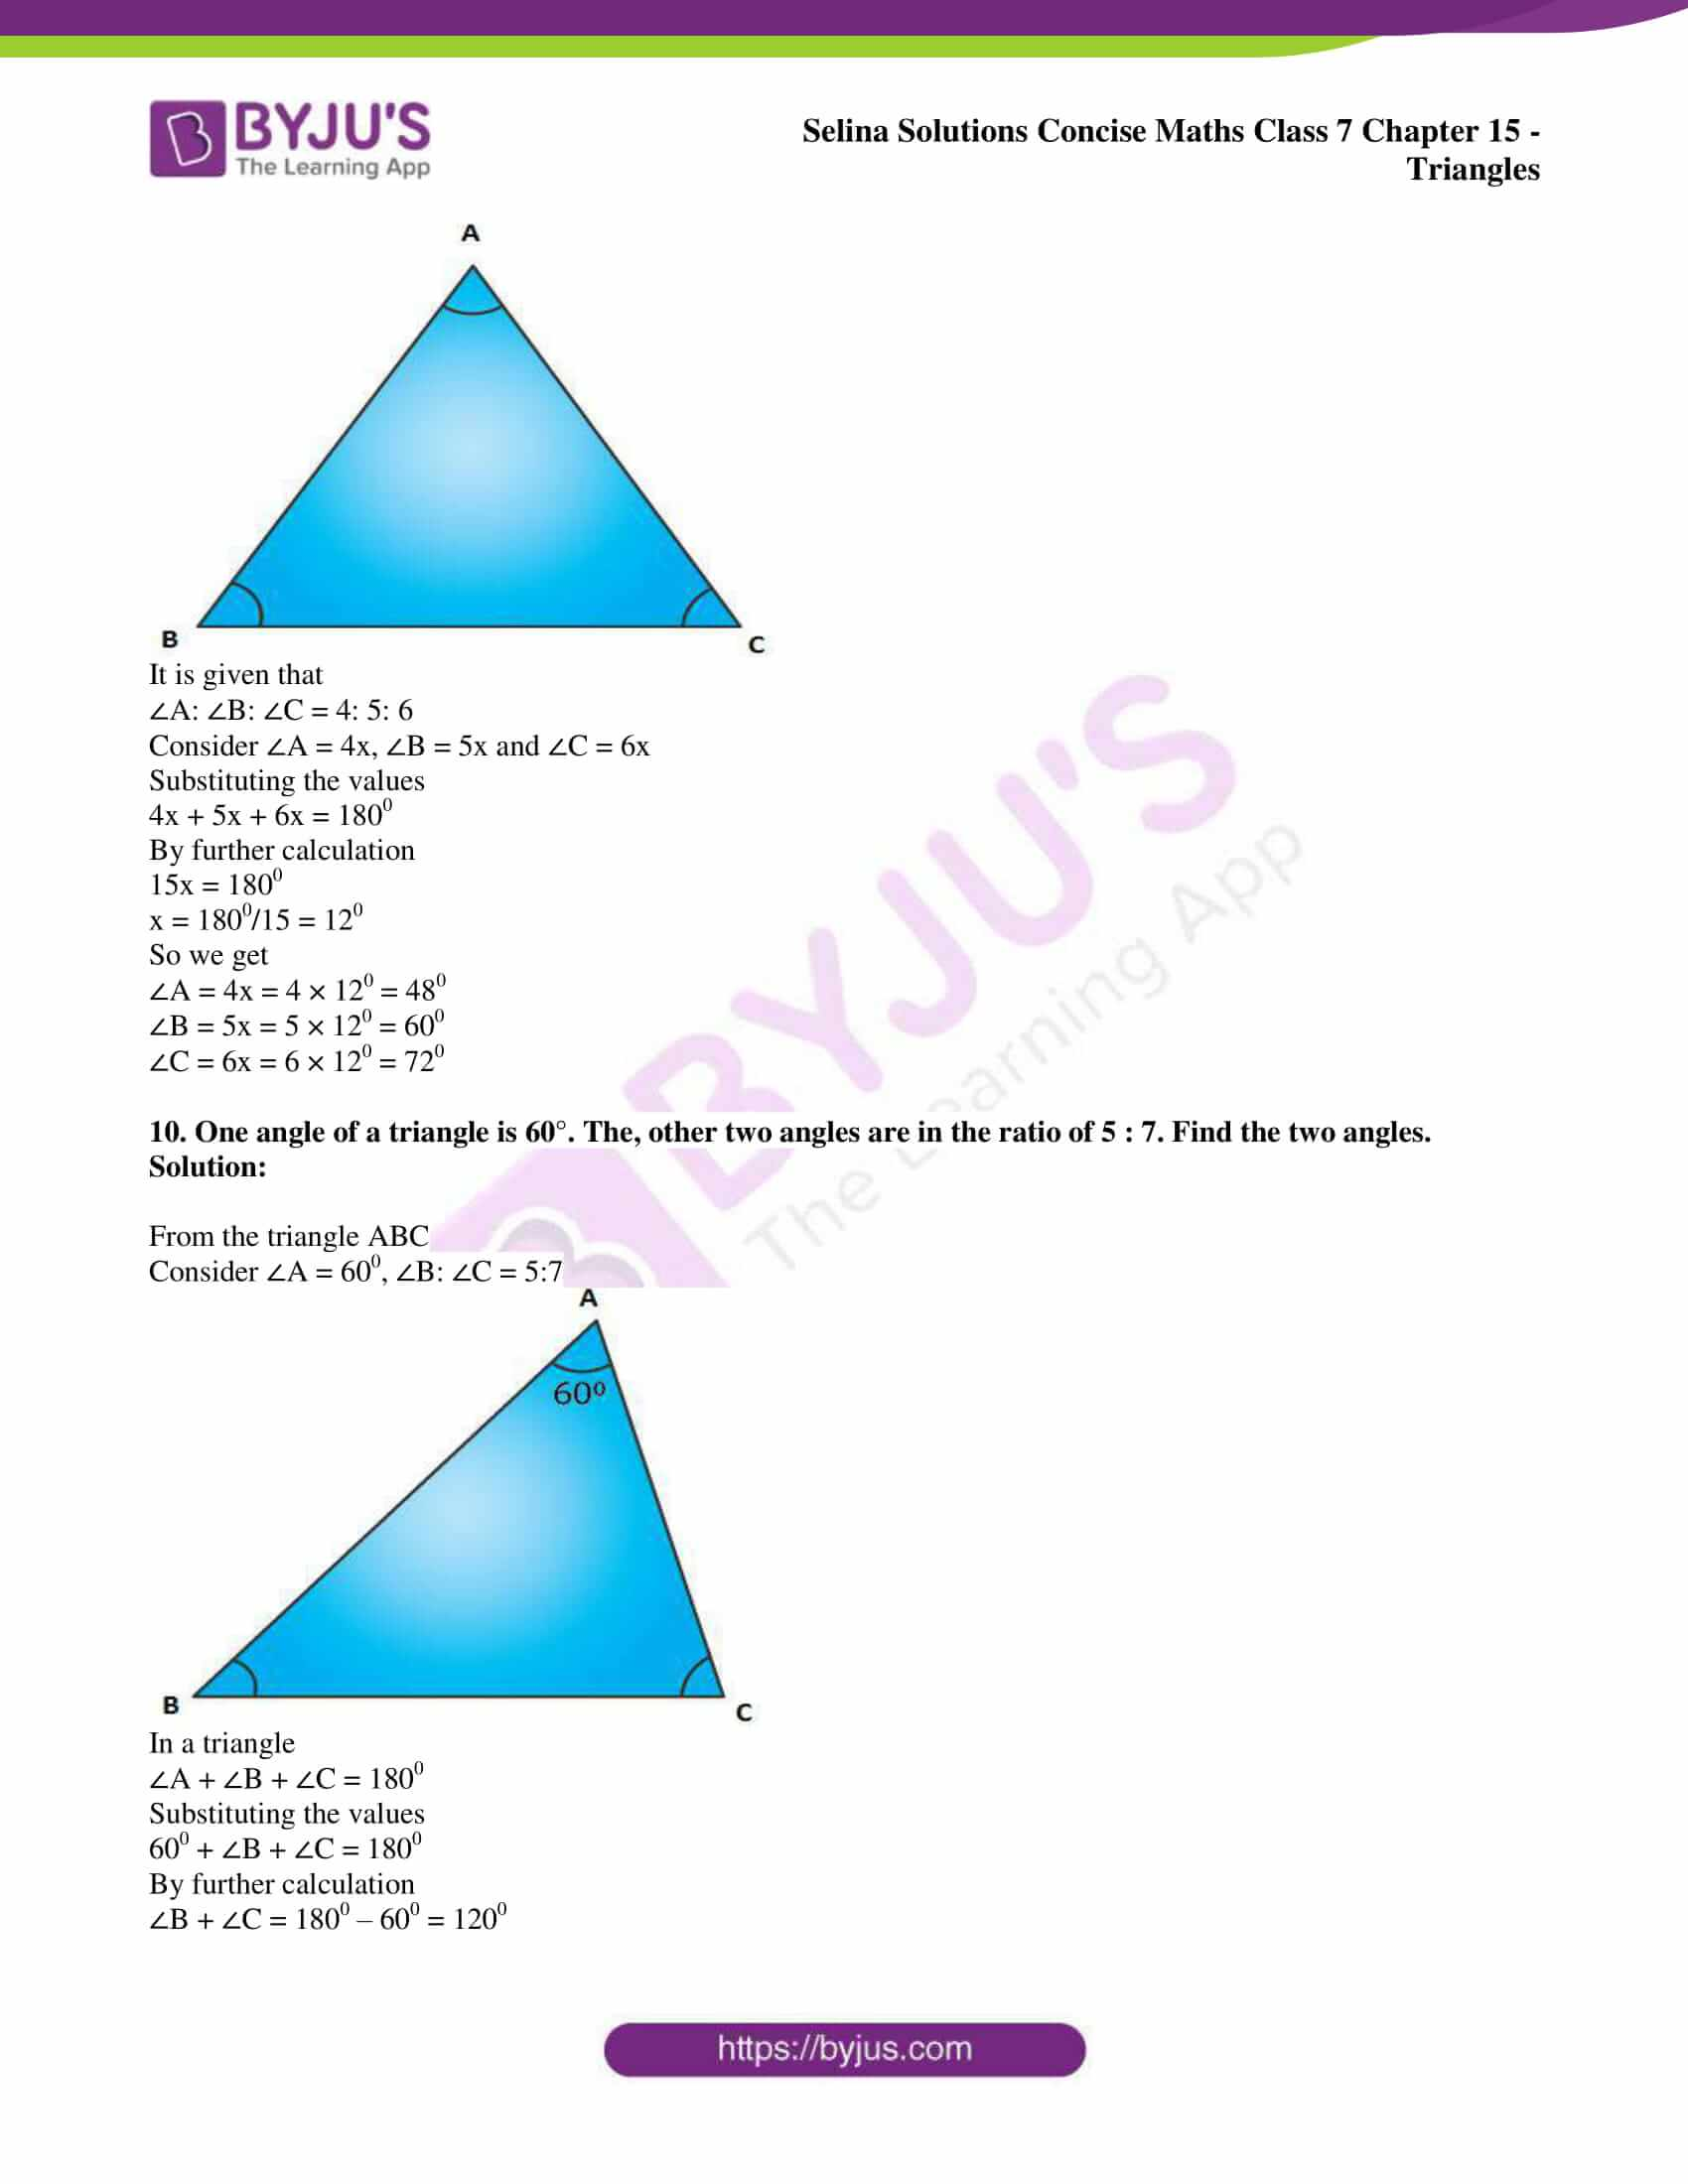 selina sol concise maths class 7 chapter 15 ex a 6